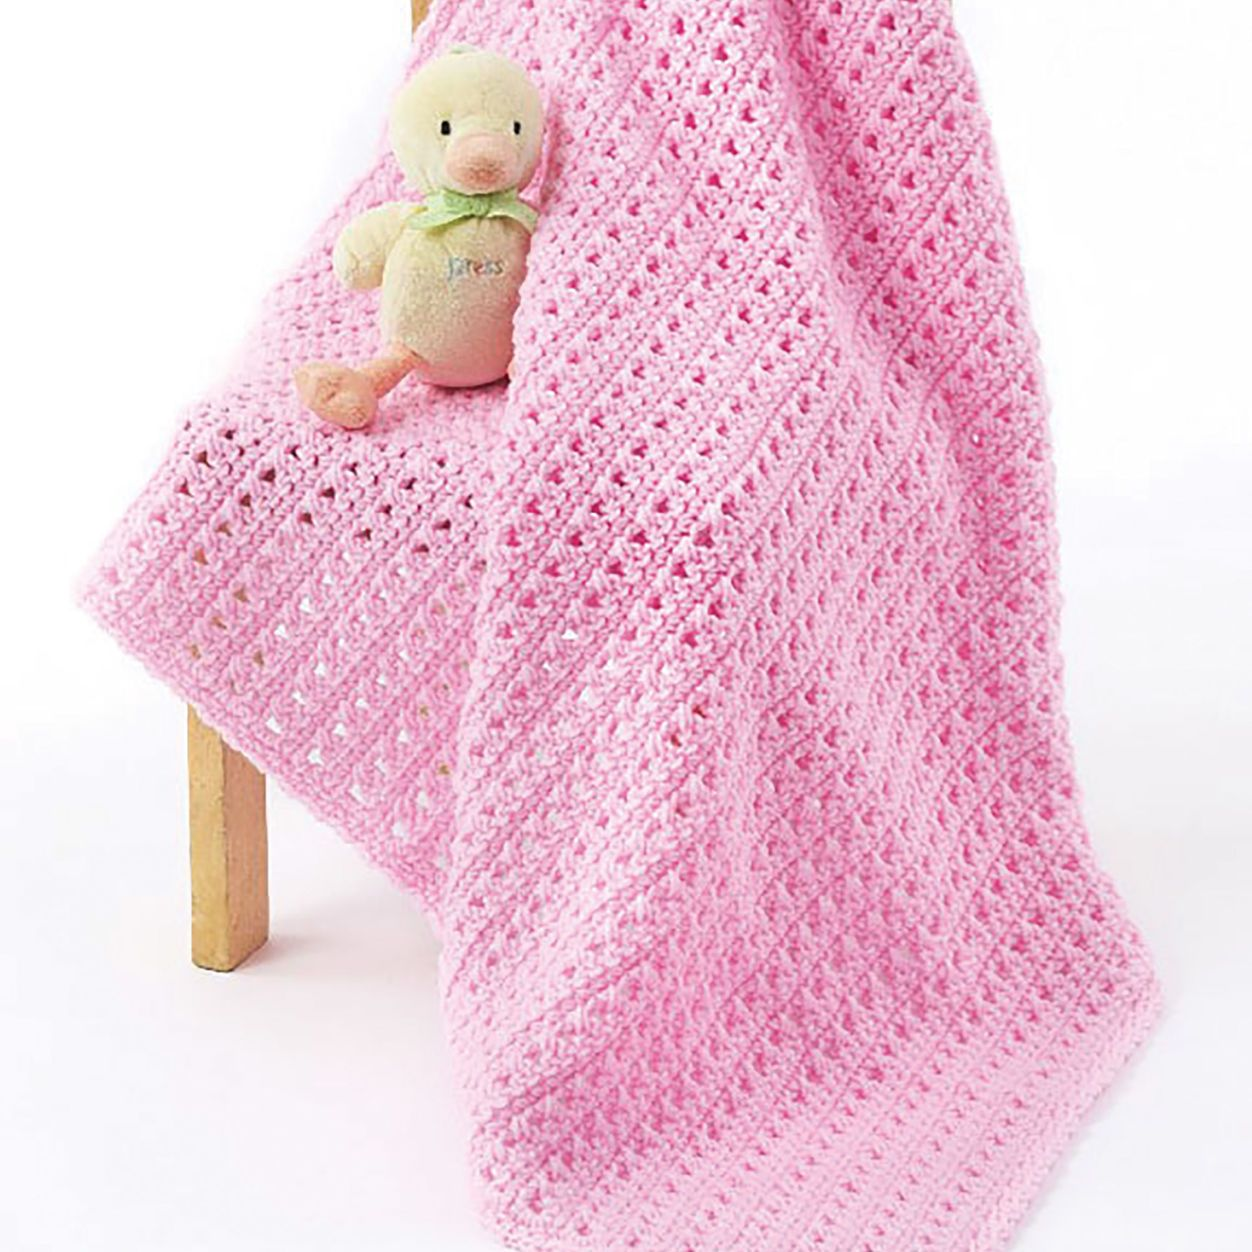 One Skein Baby Blanket pattern by Marilyn Losee | Crochet ...